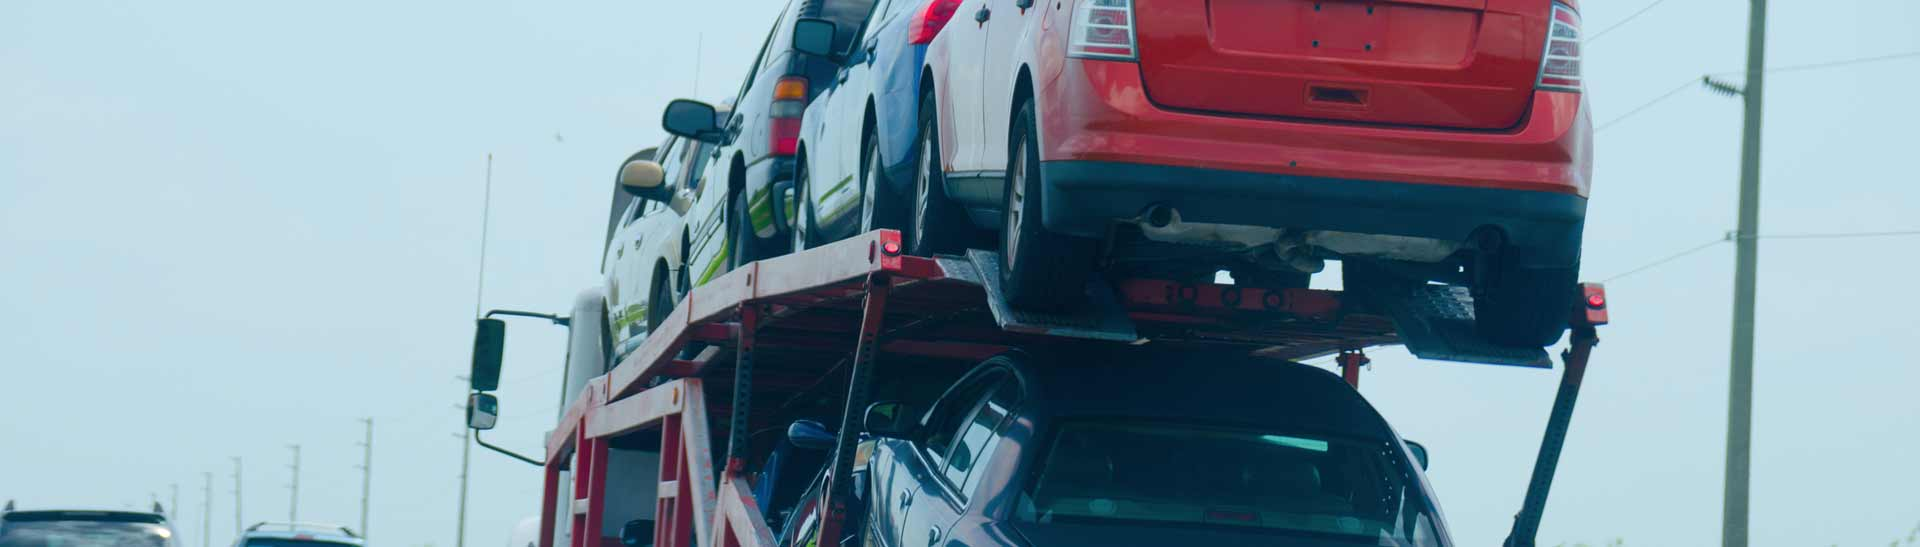 Fort Mill Trucking Company, Trucking Services and Freight Forwarding Services